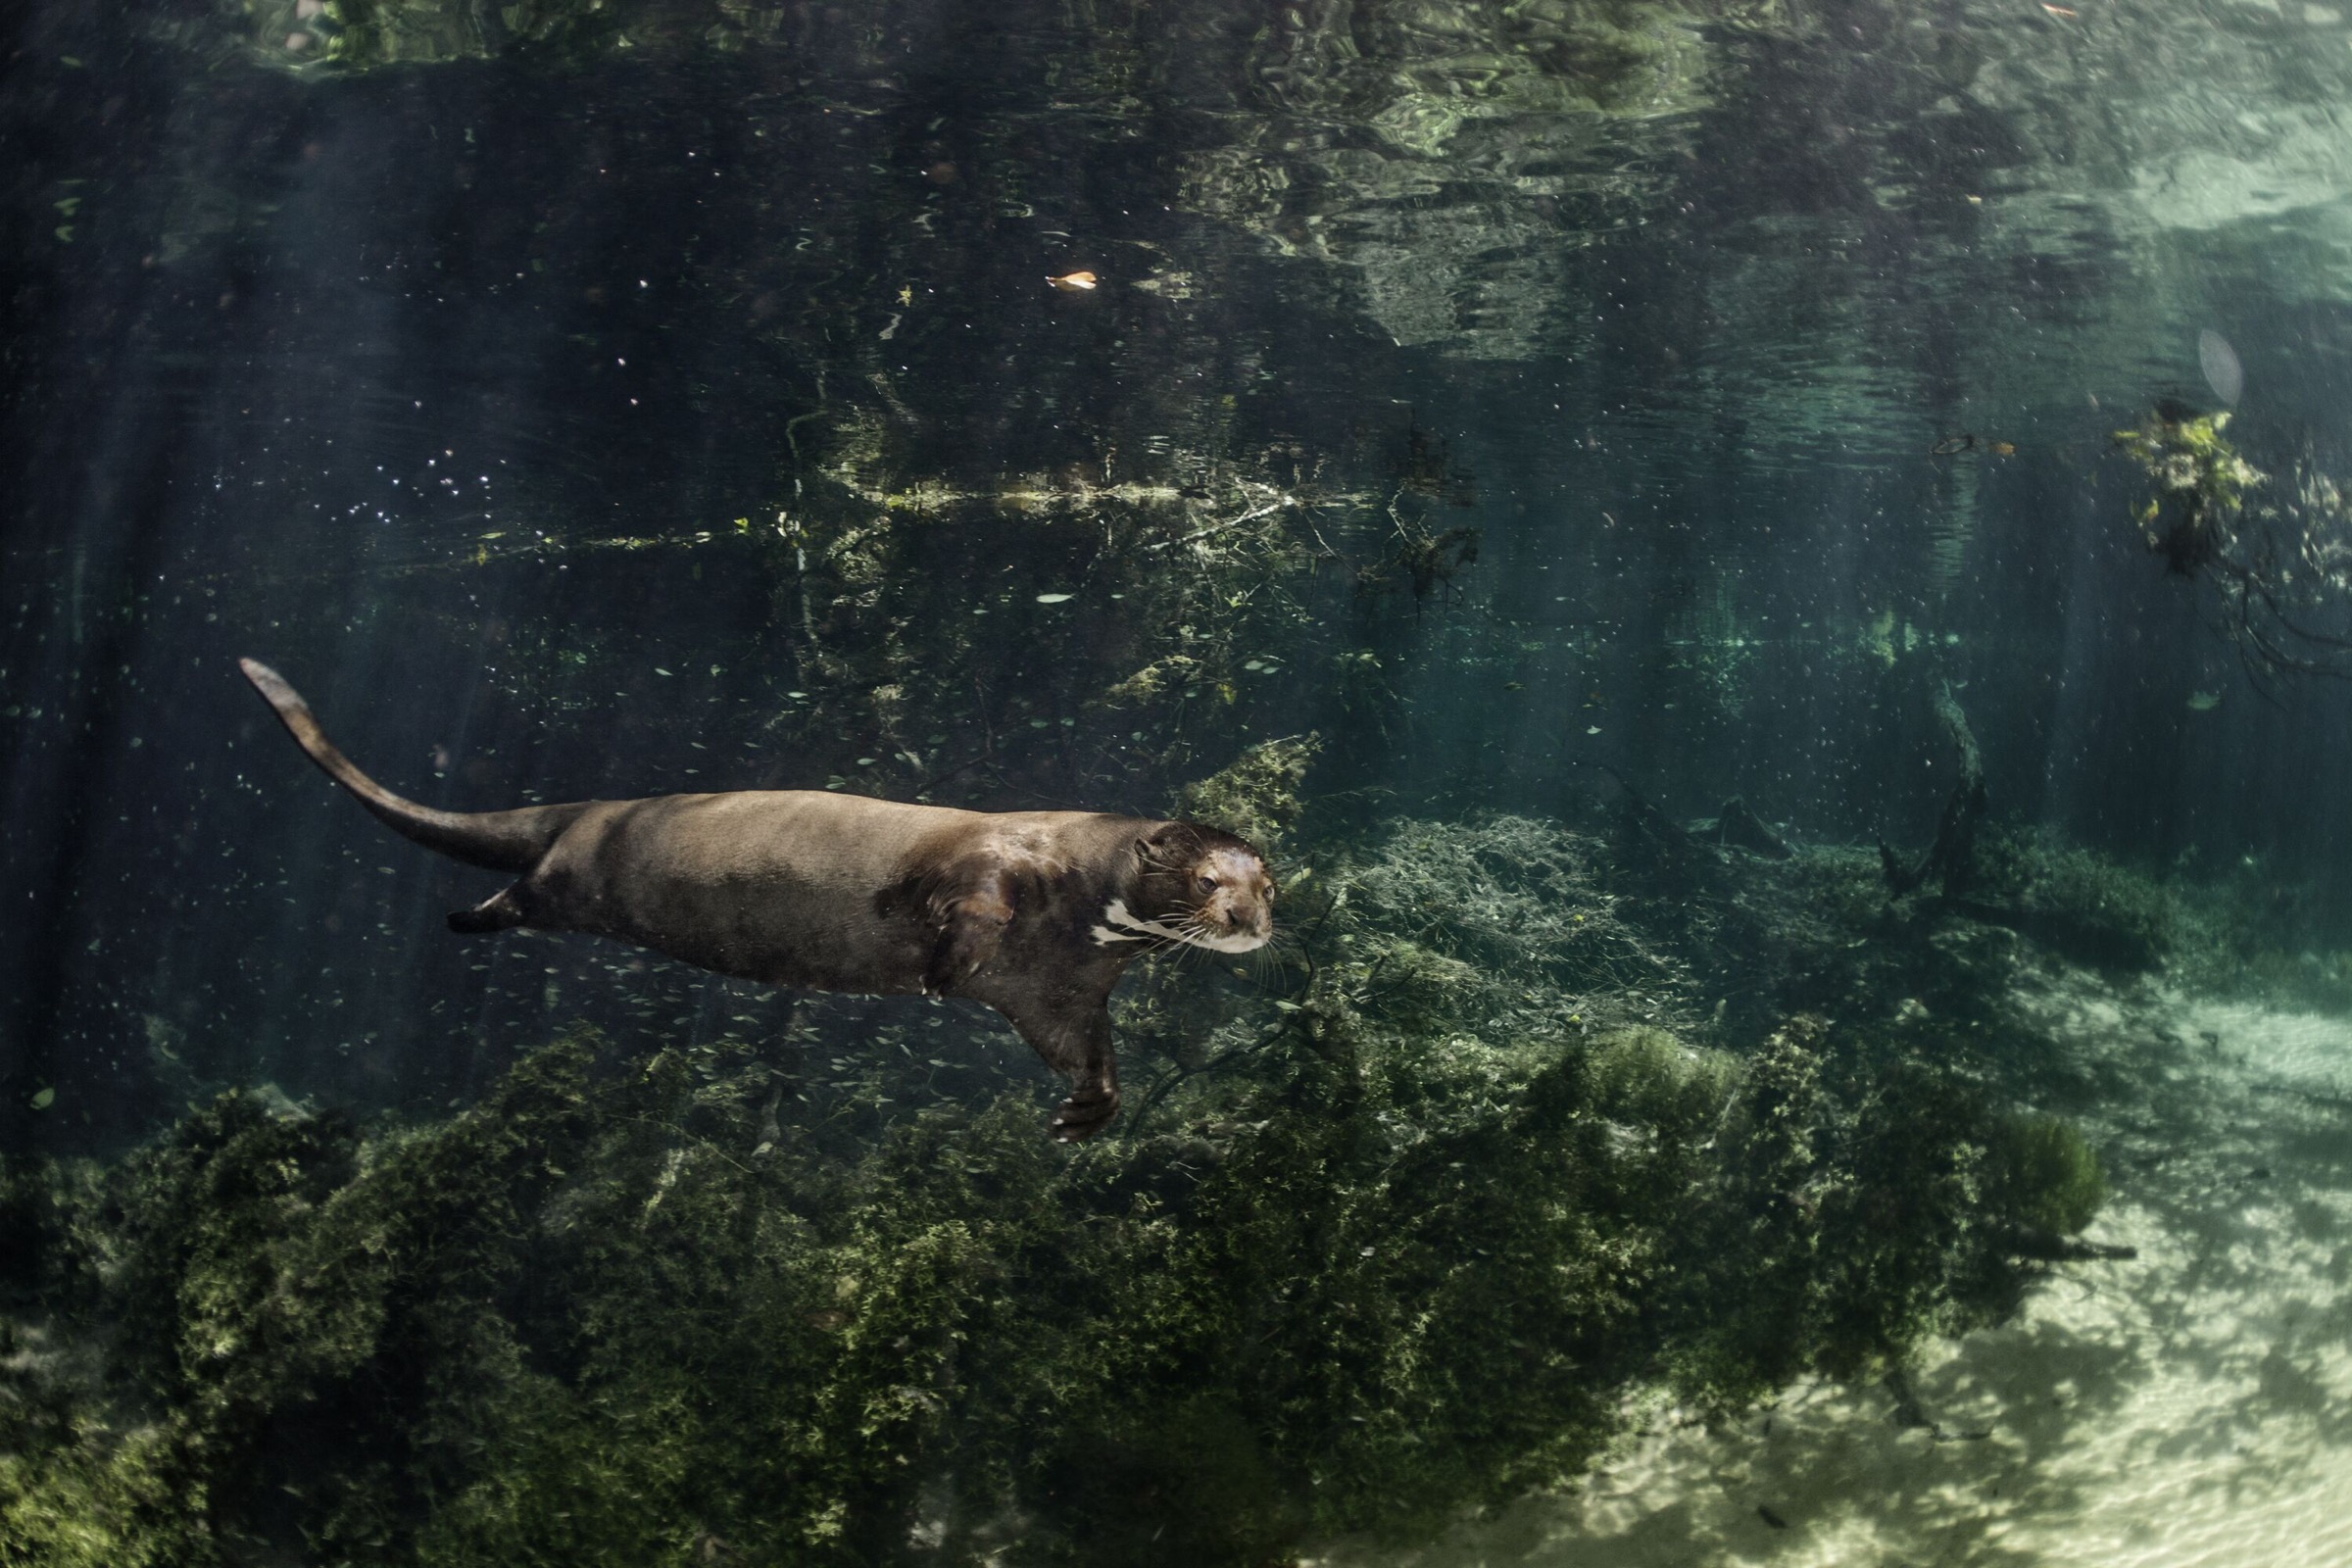 The clarity of the water makes looking for food easier for the carnivorous giant river otter.